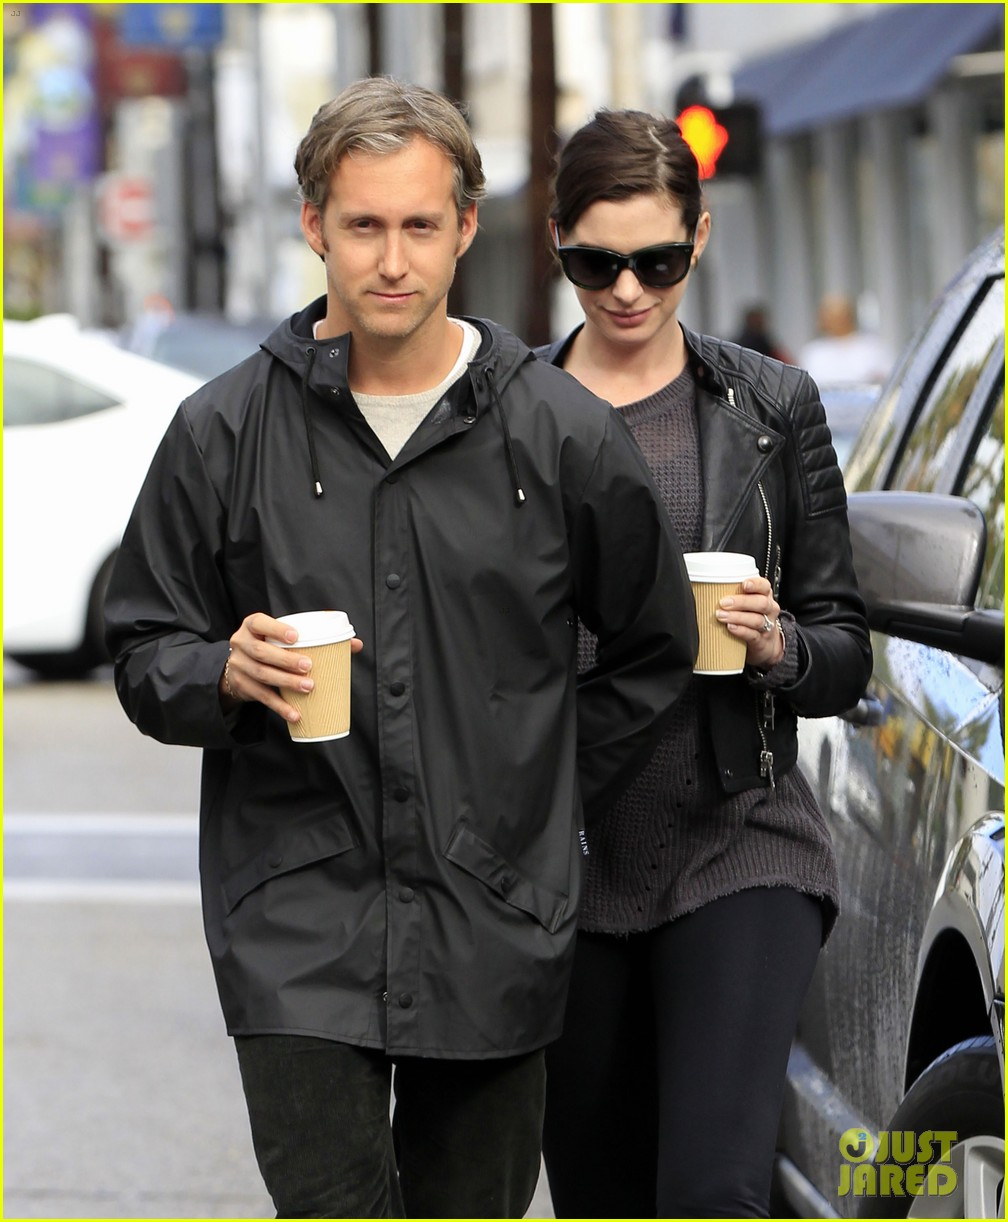 Anne Hathaway And Husband Adam Shulman Hold Hands As They: Anne Hathaway Takes Her Baby Bump For A Coffee Run!: Photo